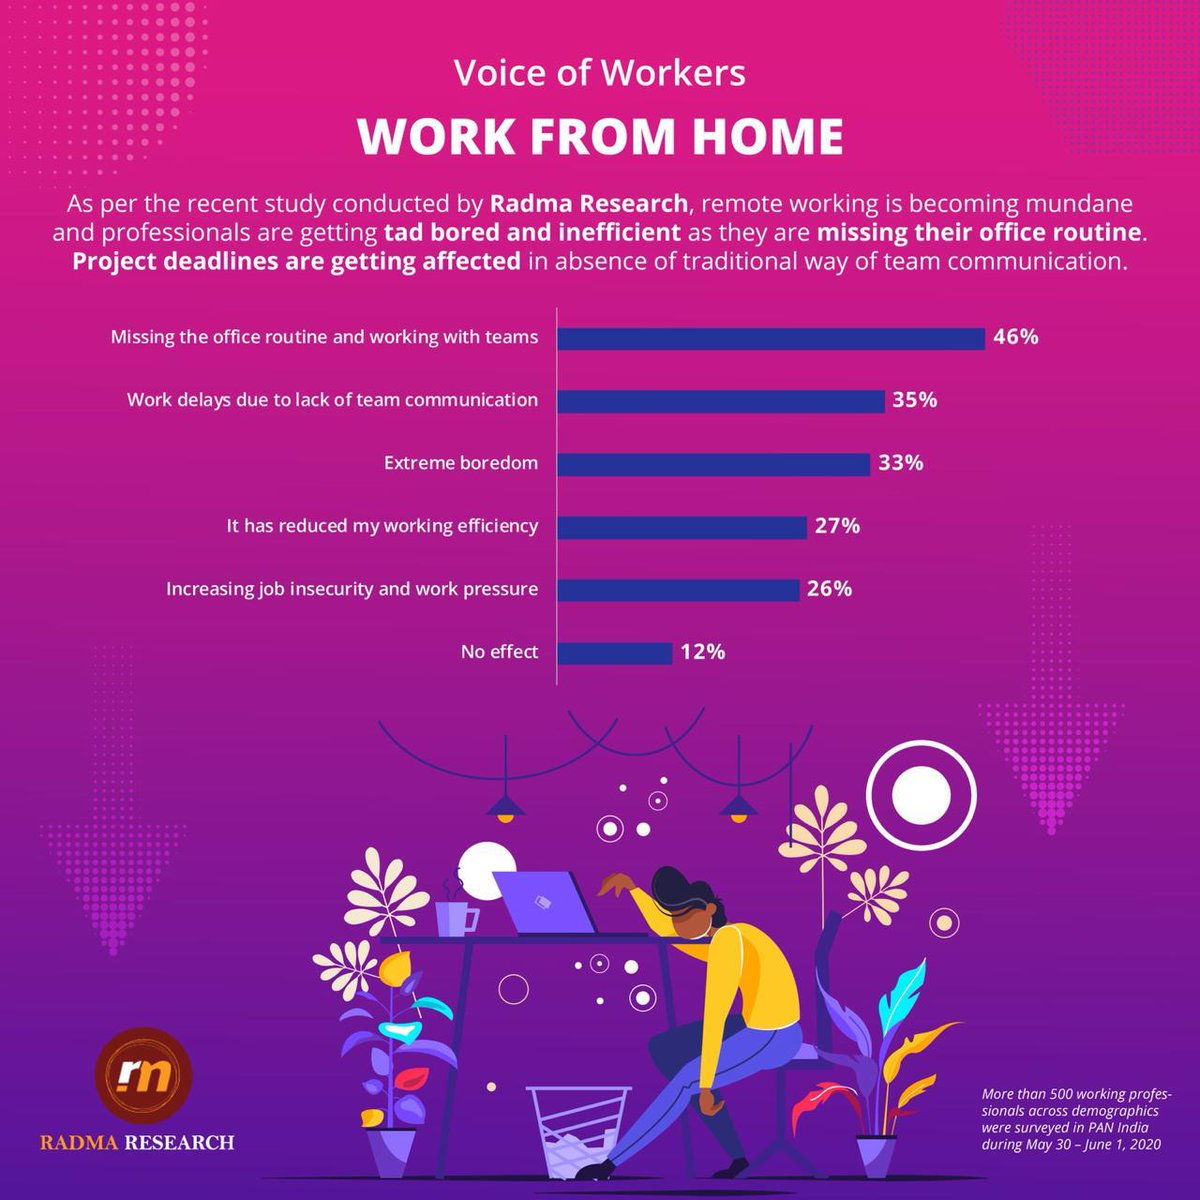 Work from home : Future or Compulsion ?  #covid19 #workfromhome #voiceofworkers #employees #employeeproductivity #employers #research #marketresearch #lockdowneffect #newnormal #socialdistancing #indiafightcorona #employeesatisfaction #indians #workforce #workingremotelypic.twitter.com/UBaW16CwKm